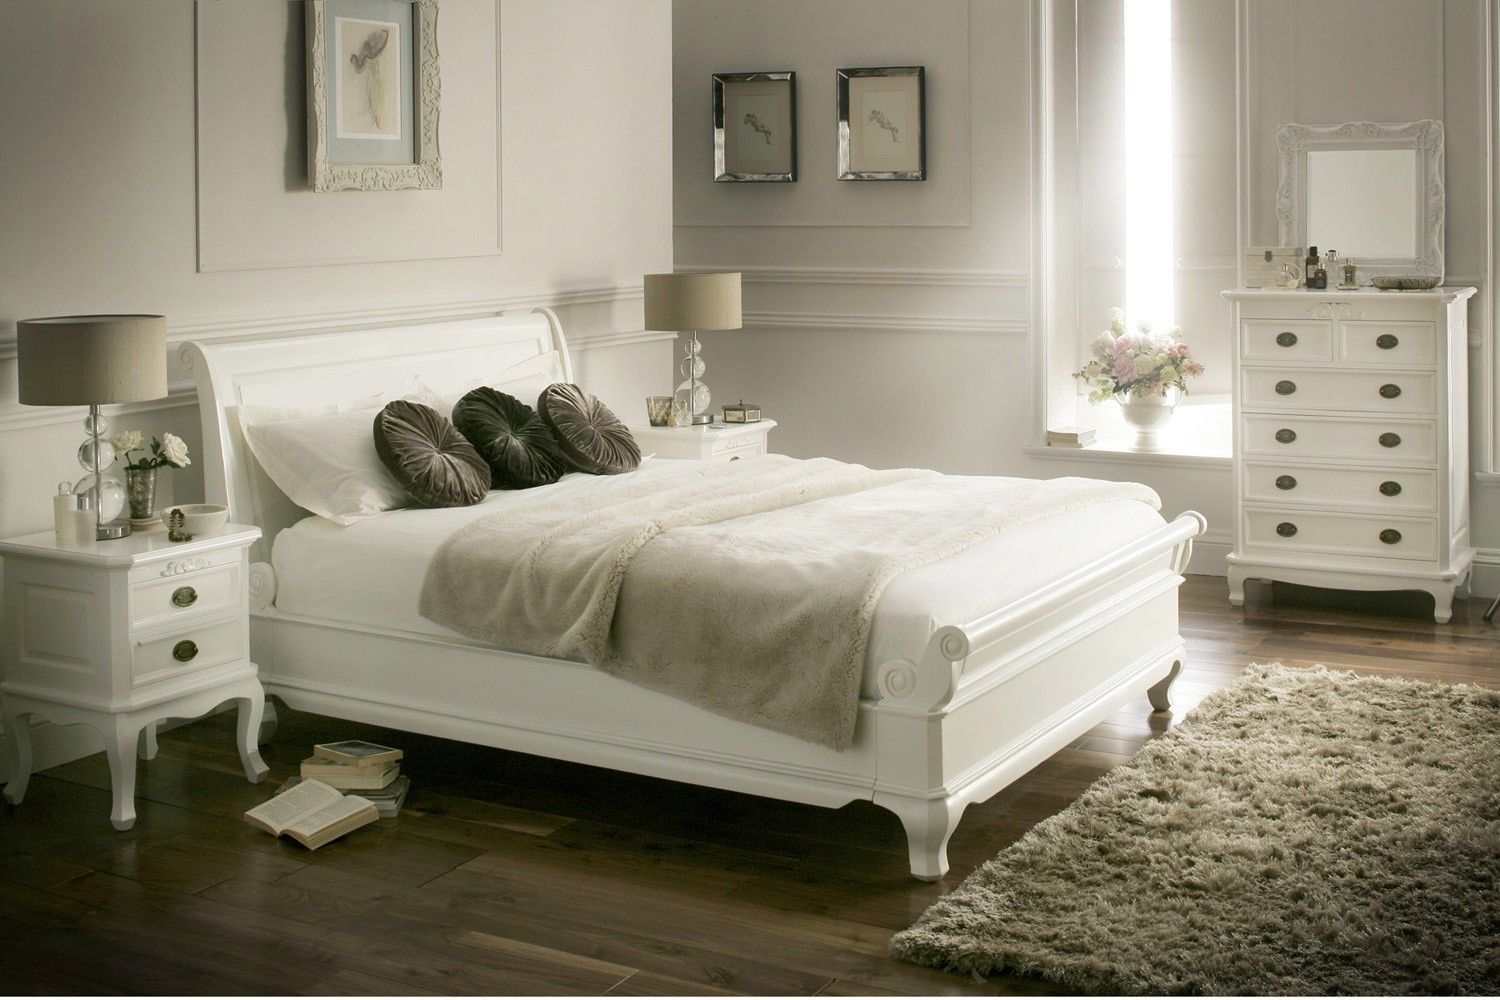 white wooden sleigh bed painted wood wooden beds beds bedroom